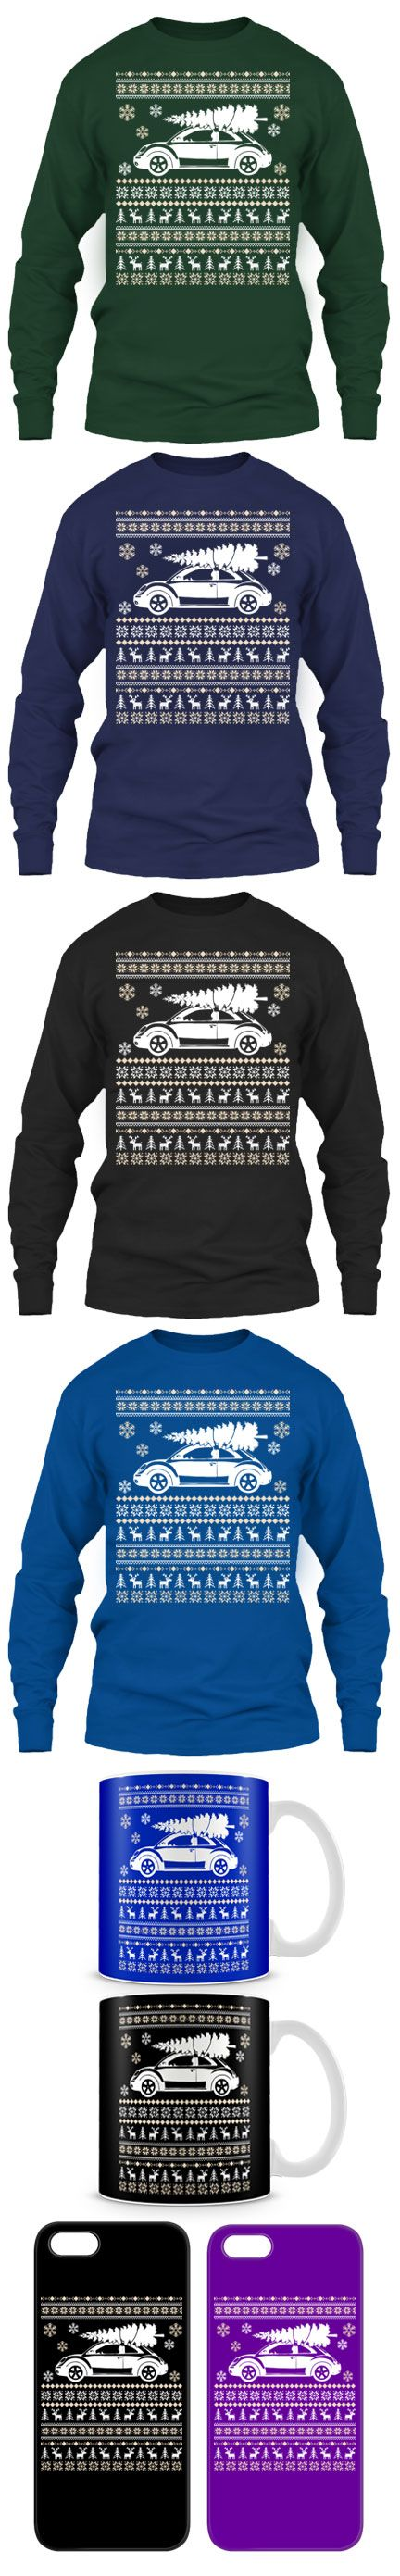 Beetle Ugly Christmas Sweater! Click The Image To Buy It Now or ...